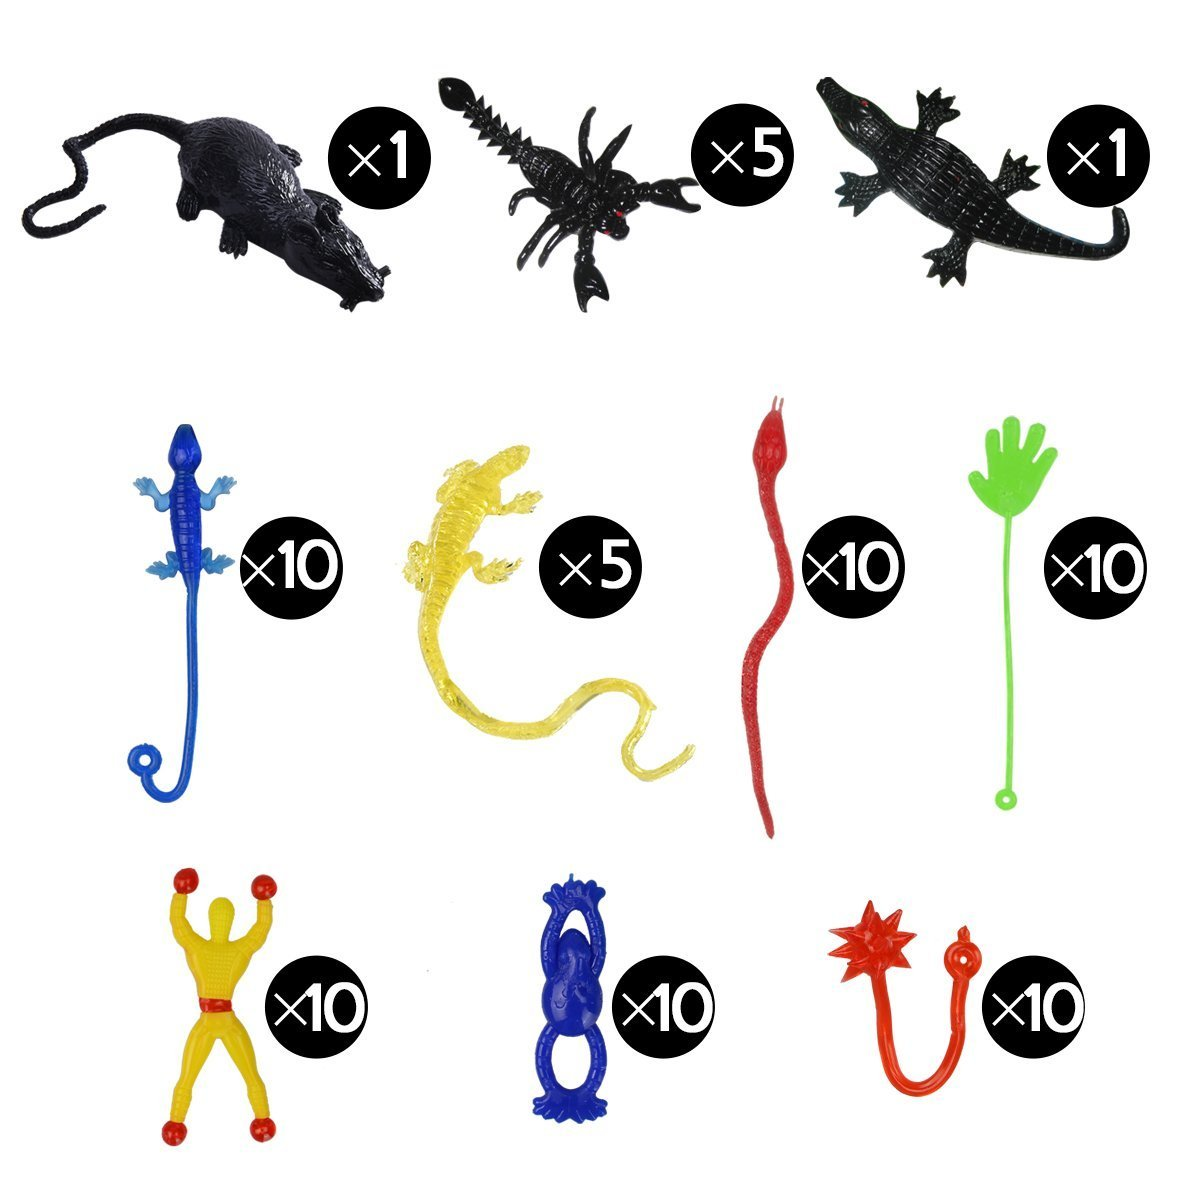 72 Pack Vinyl Stretchy Sticky Toys, Includes Sticky Hands, Wall Climber Men, Hammers, Snakes, Flying Frogs, Lizards, Scorpions, Black Mouse, Big Alligator, Birthday Party Favors Gifts Toys for Kids